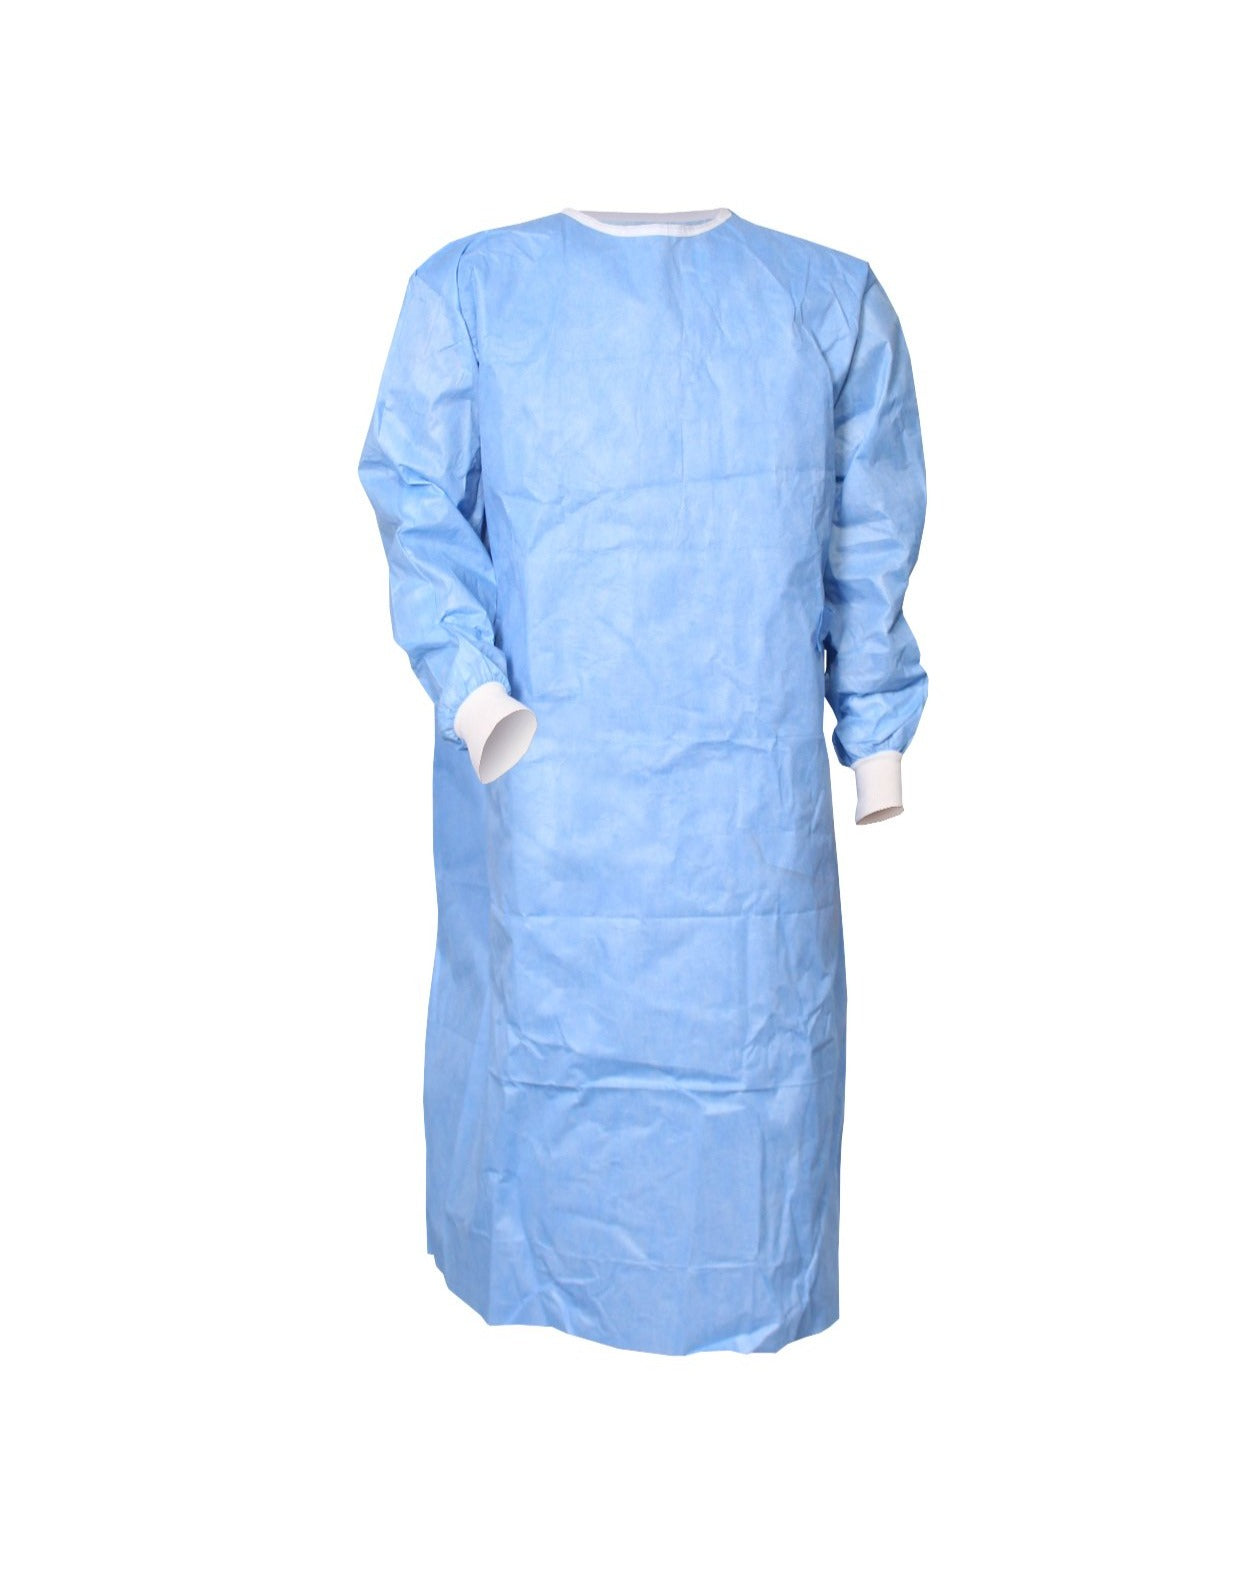 Sterile Spunlace Surgical Gown